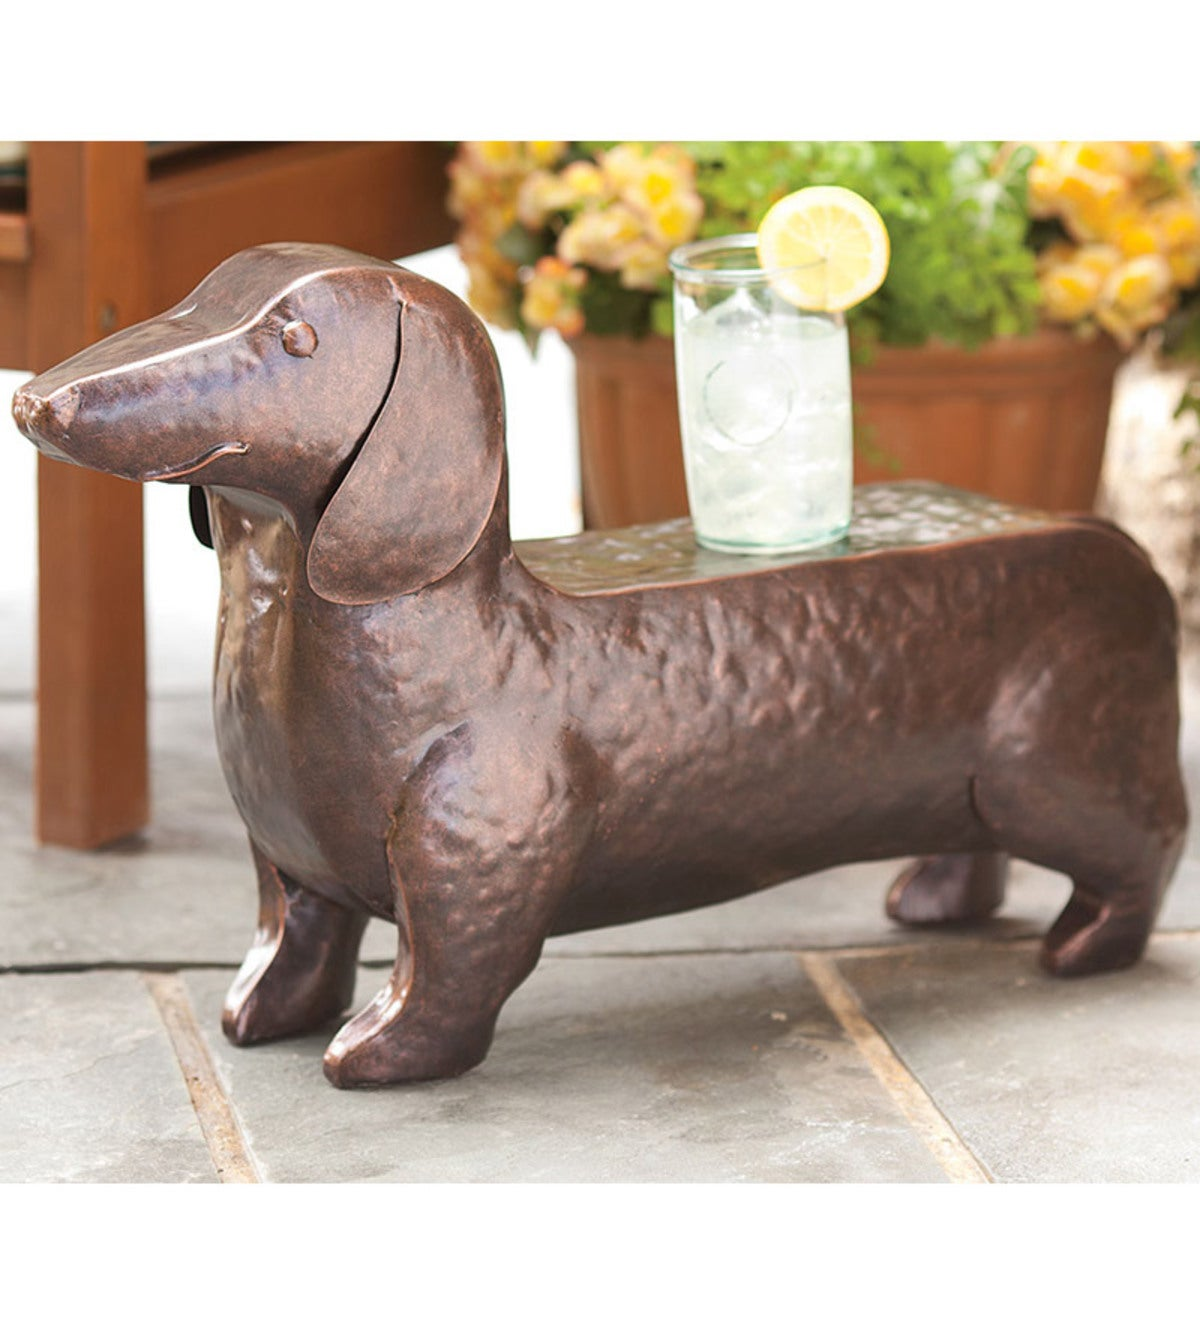 Hand-Hammered Iron Dachshund Dog Accent Table